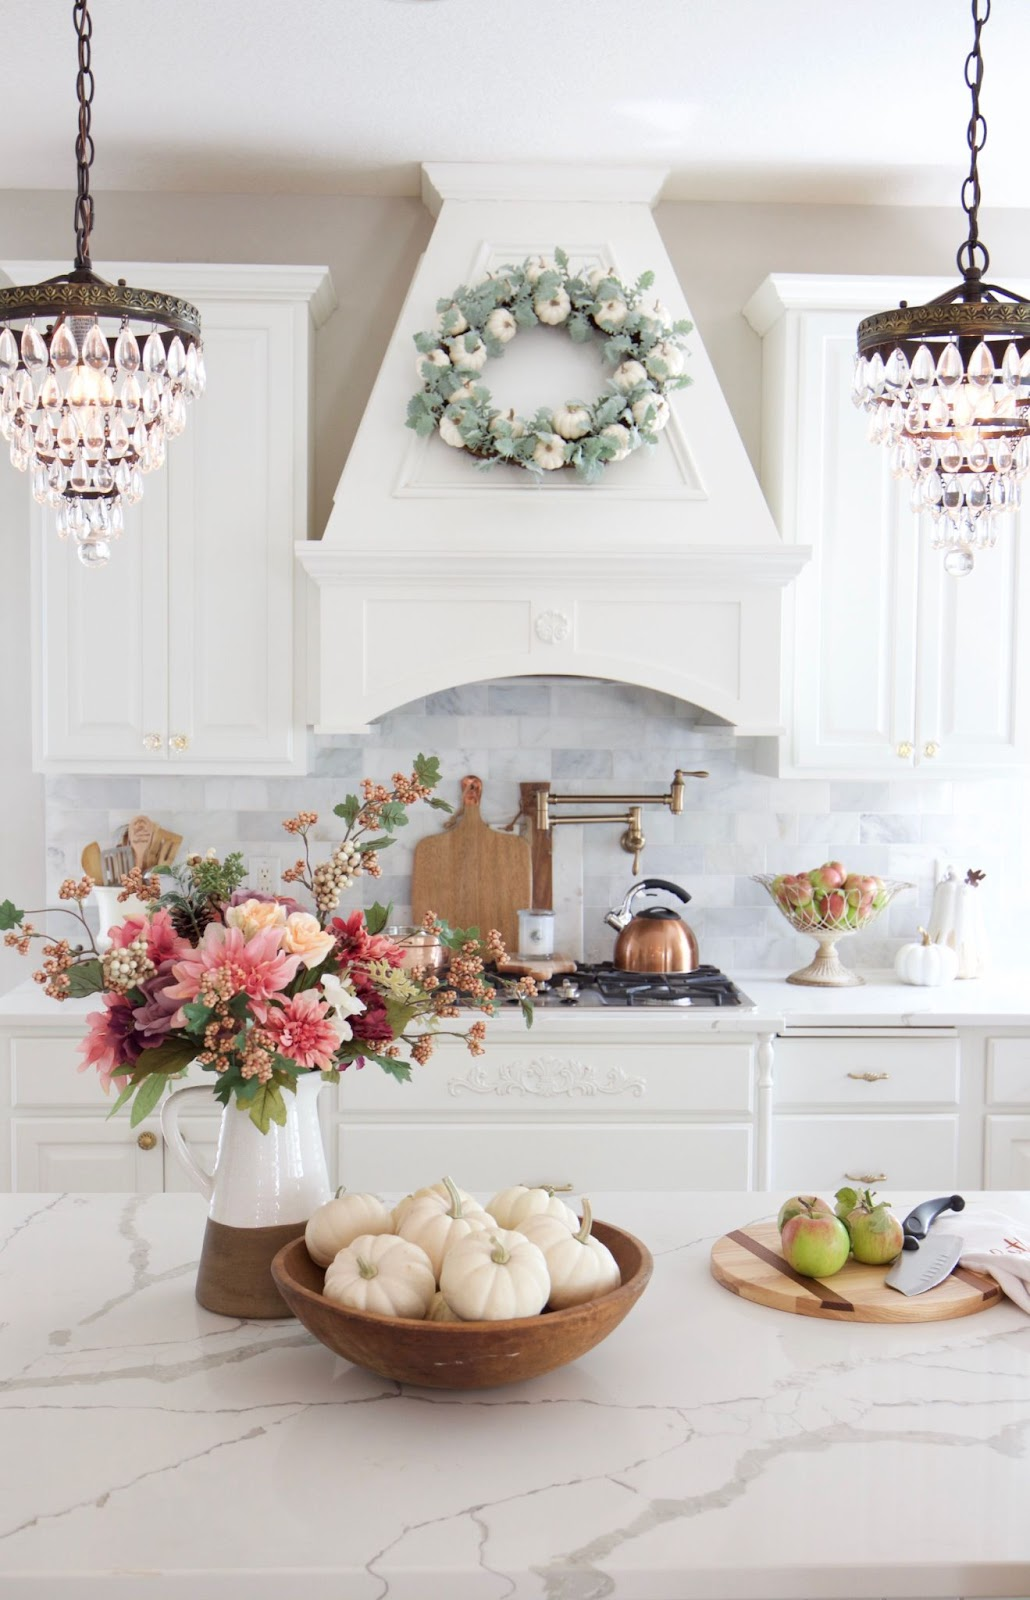 White  pumpkins and apples and fall colored flowers in kitchen.